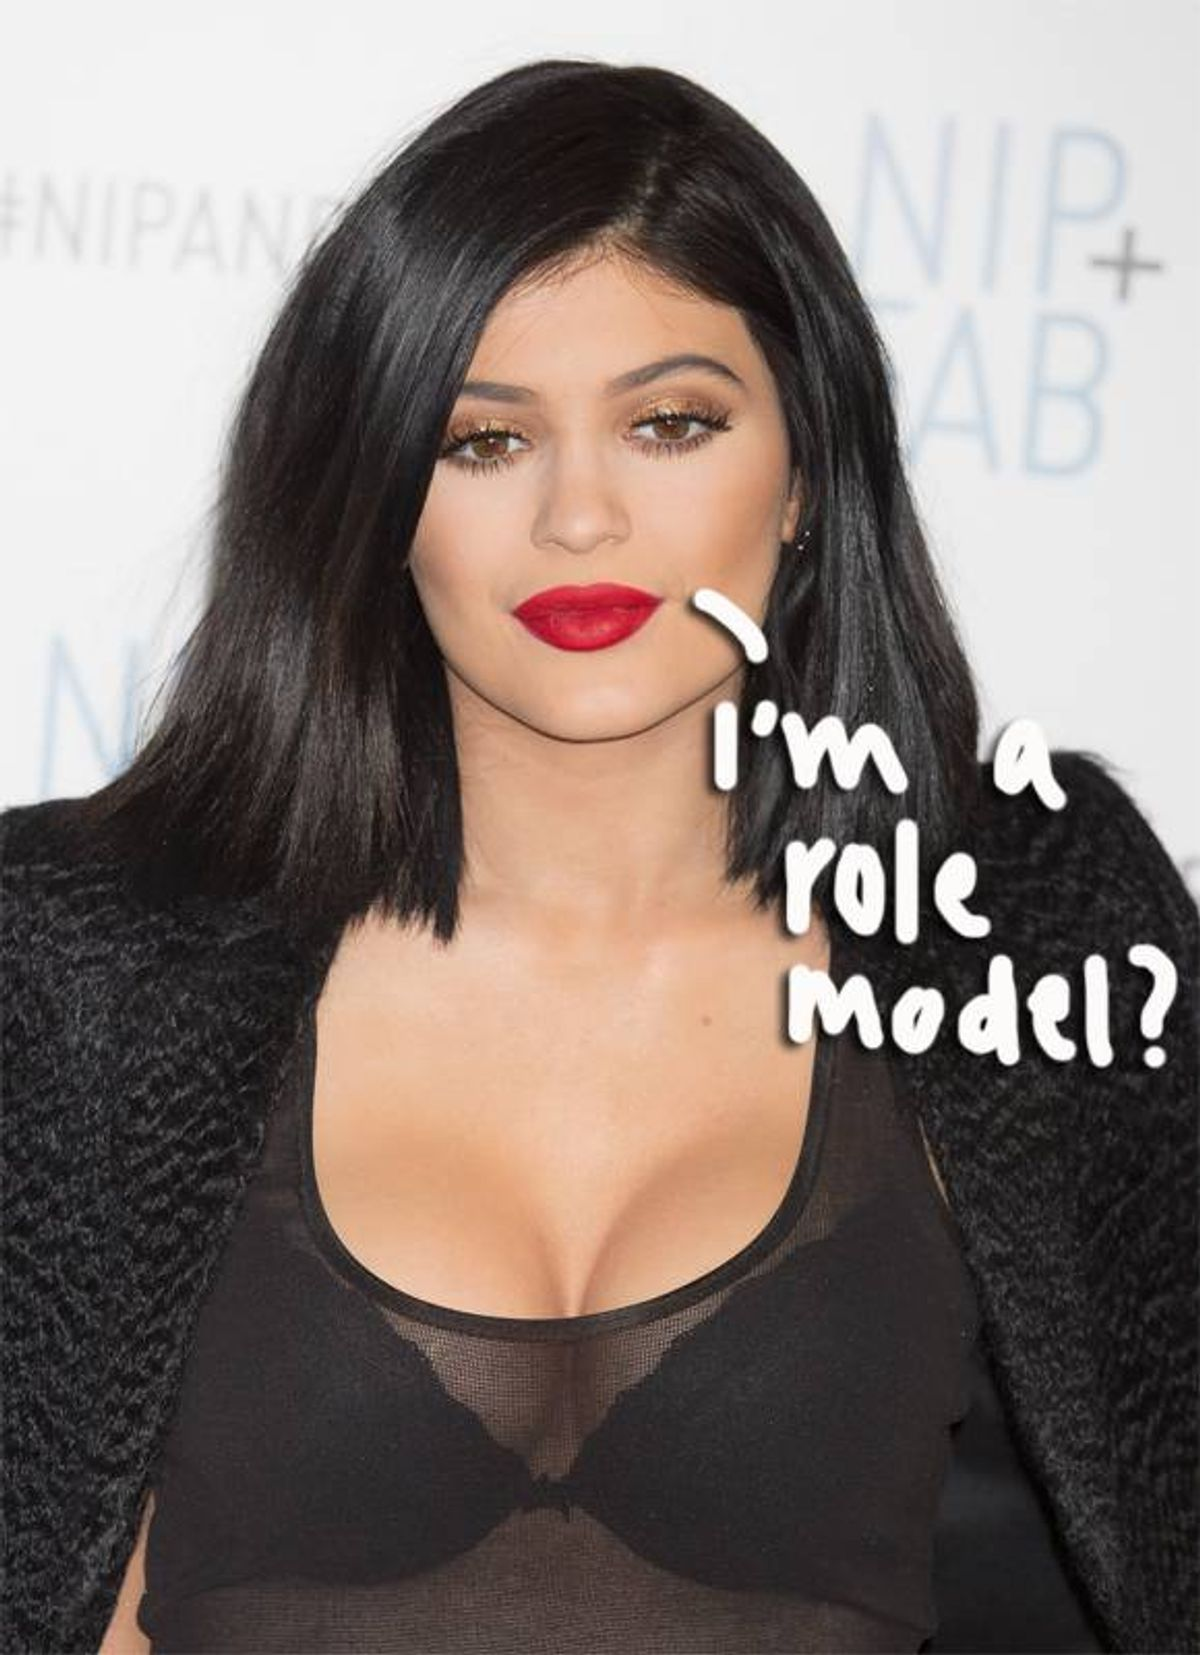 Kylie Jenner: Worst Role Model For Young Girls